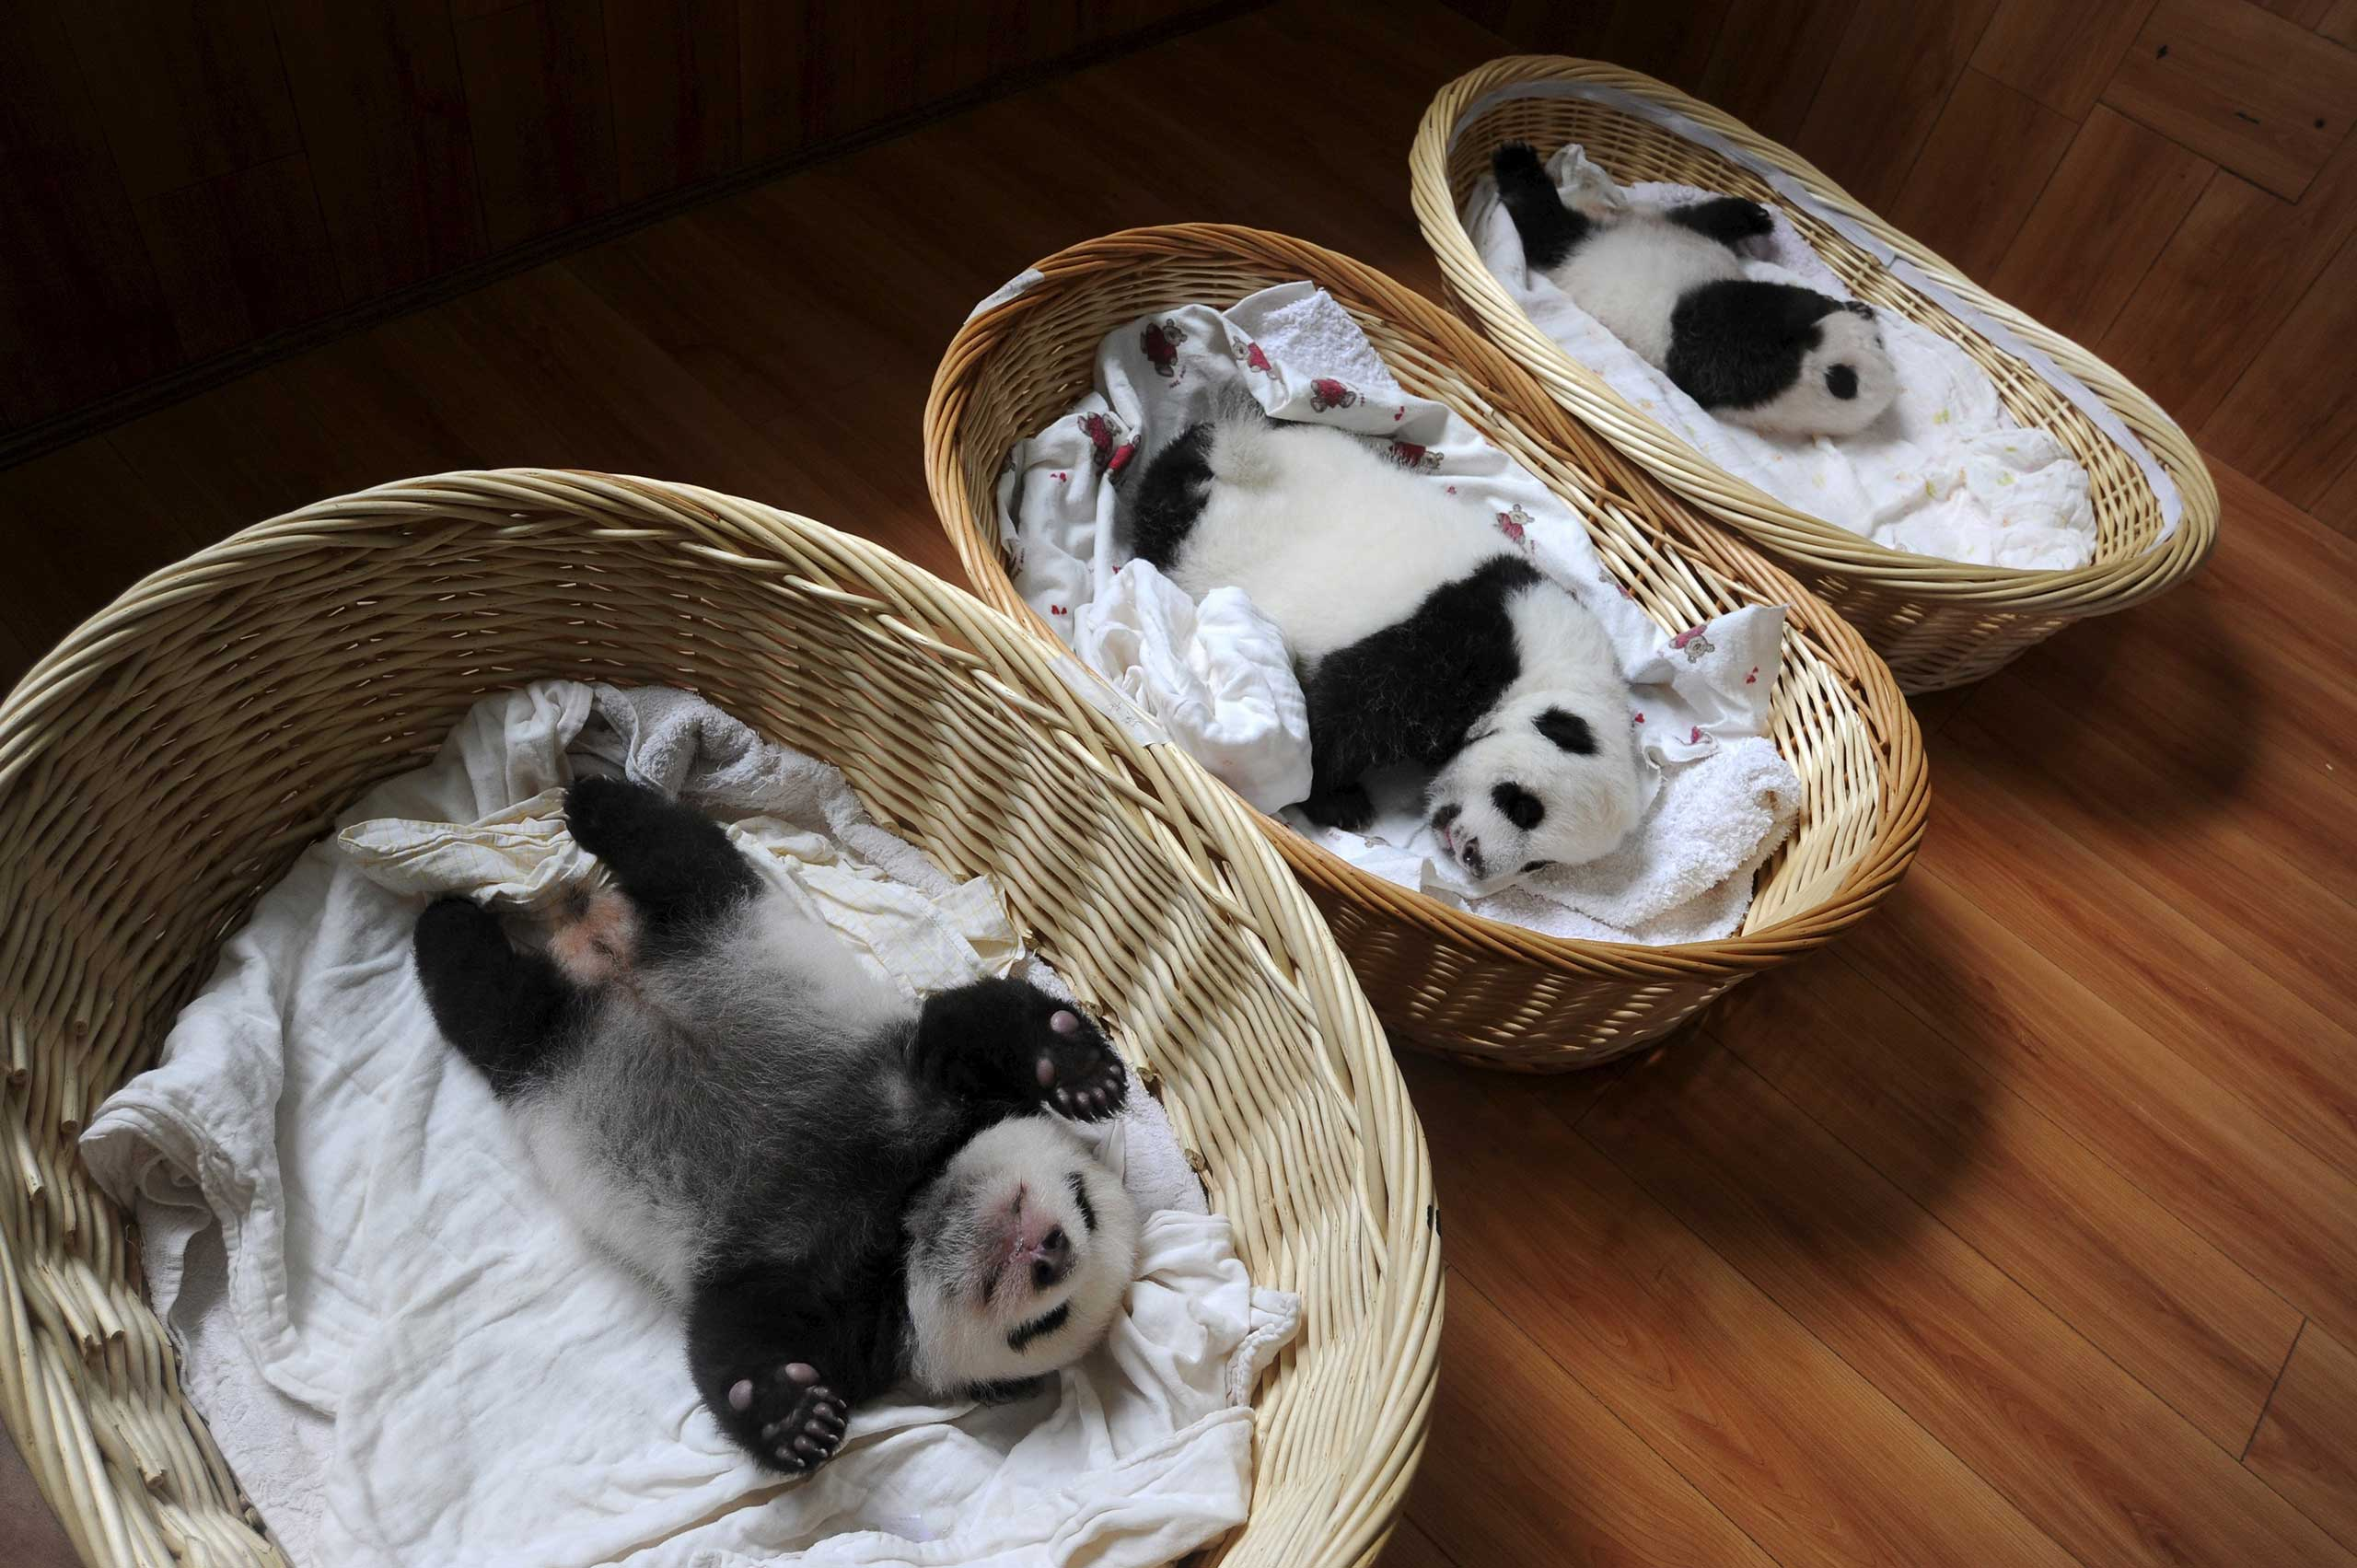 Giant panda cubs are seen inside baskets during their debut appearance to visitors at a giant panda breeding centre in Ya'an, Sichuan province, China, on Aug. 21, 2015.